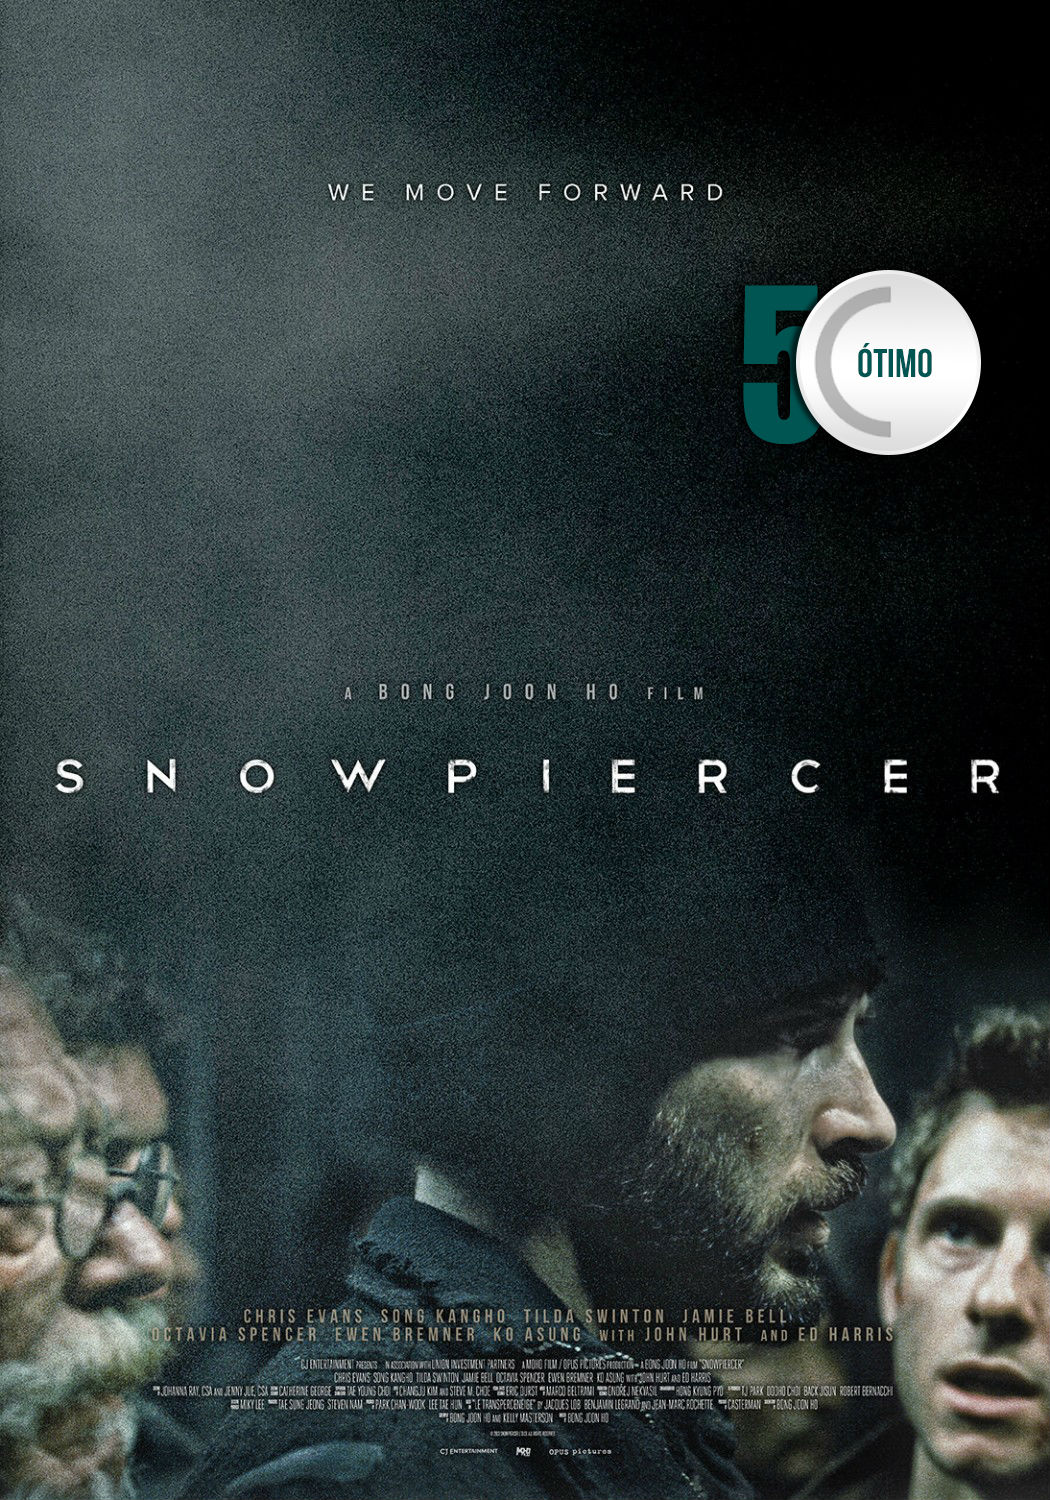 SNOWPIERCER-Official-Poster-Banner-PROMO-INTERNATIONAL-28OUTUBRO2013-01